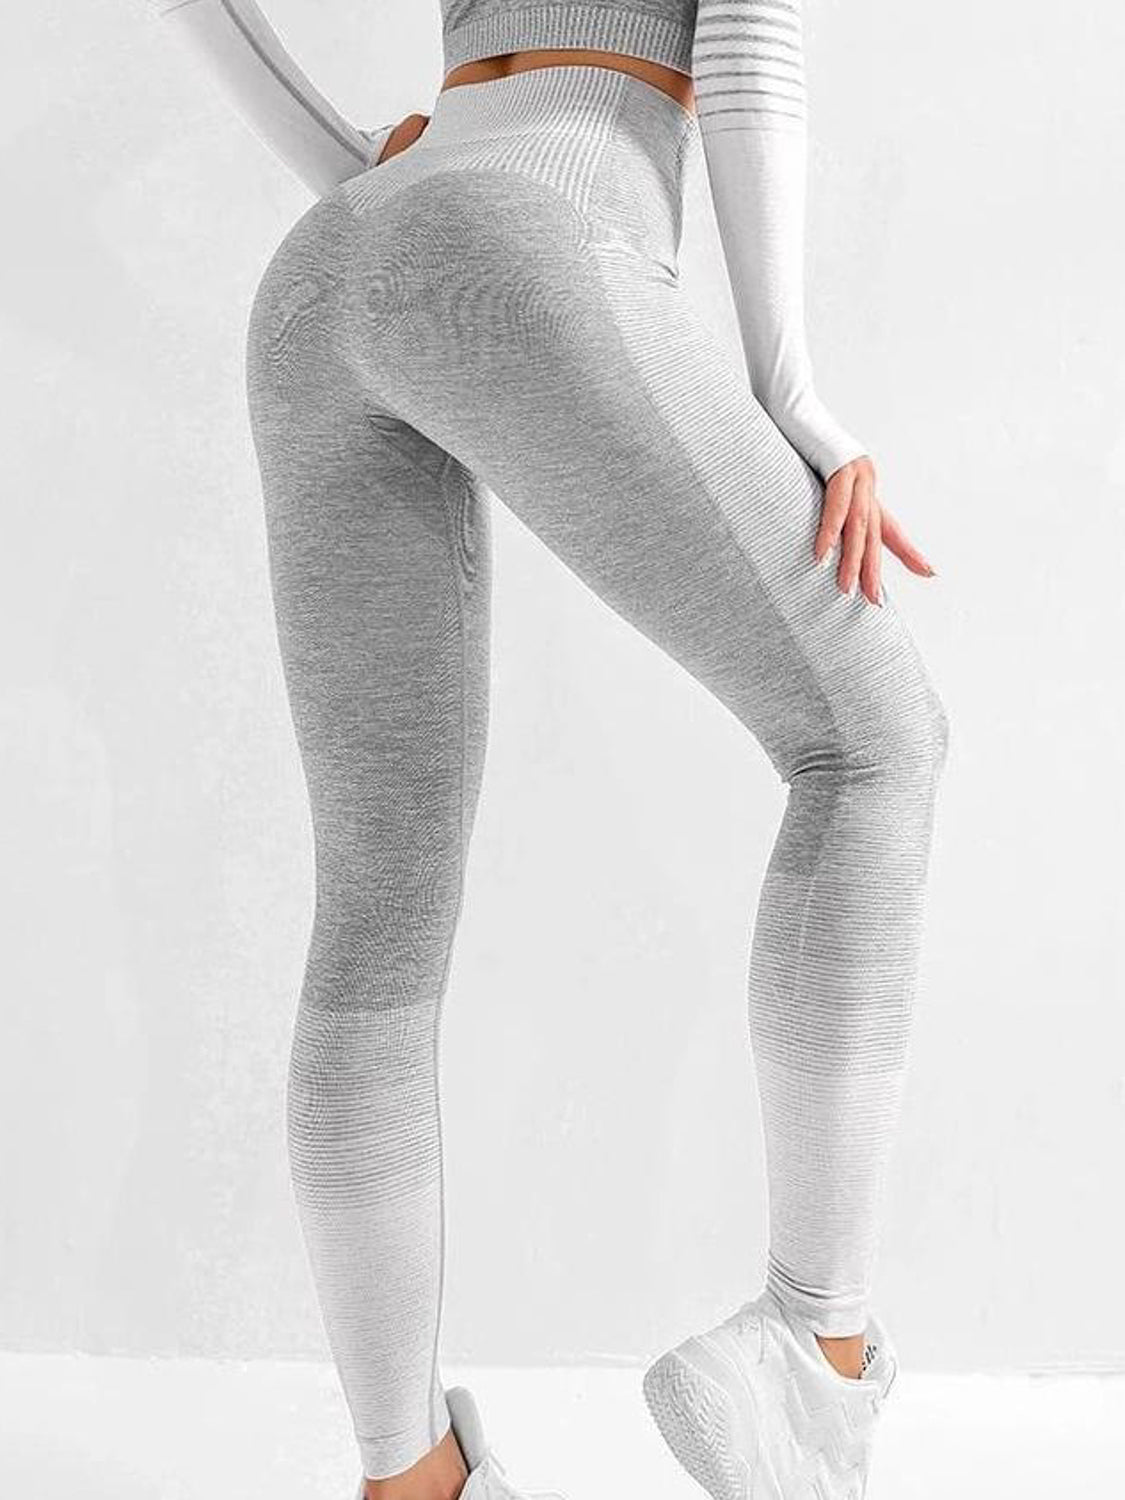 MOVI Rise Full Length Legging - Grey/White